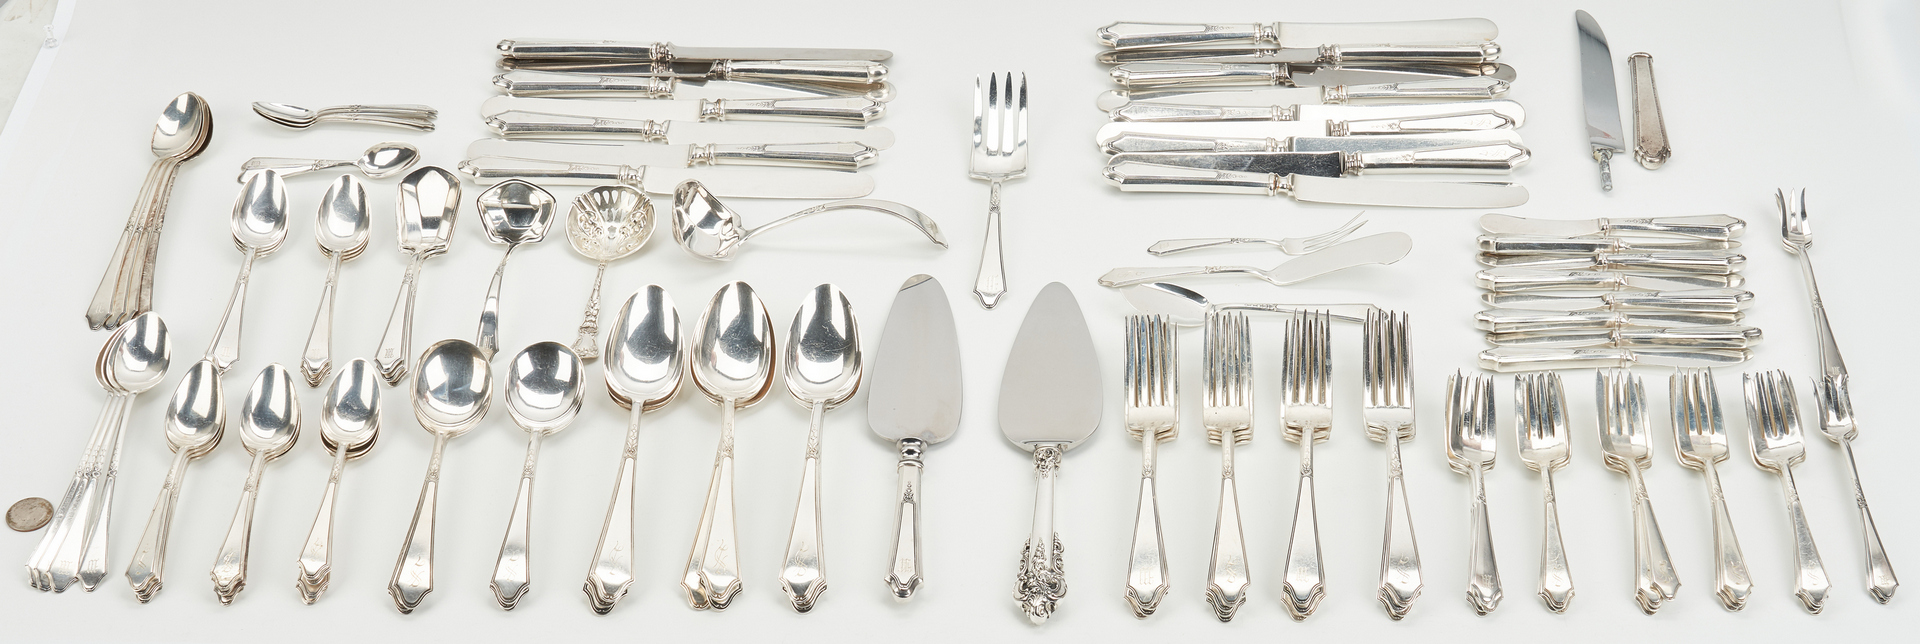 "Lot 744: 126 pcs. Sterling ""Treasure"" Flatware & More"